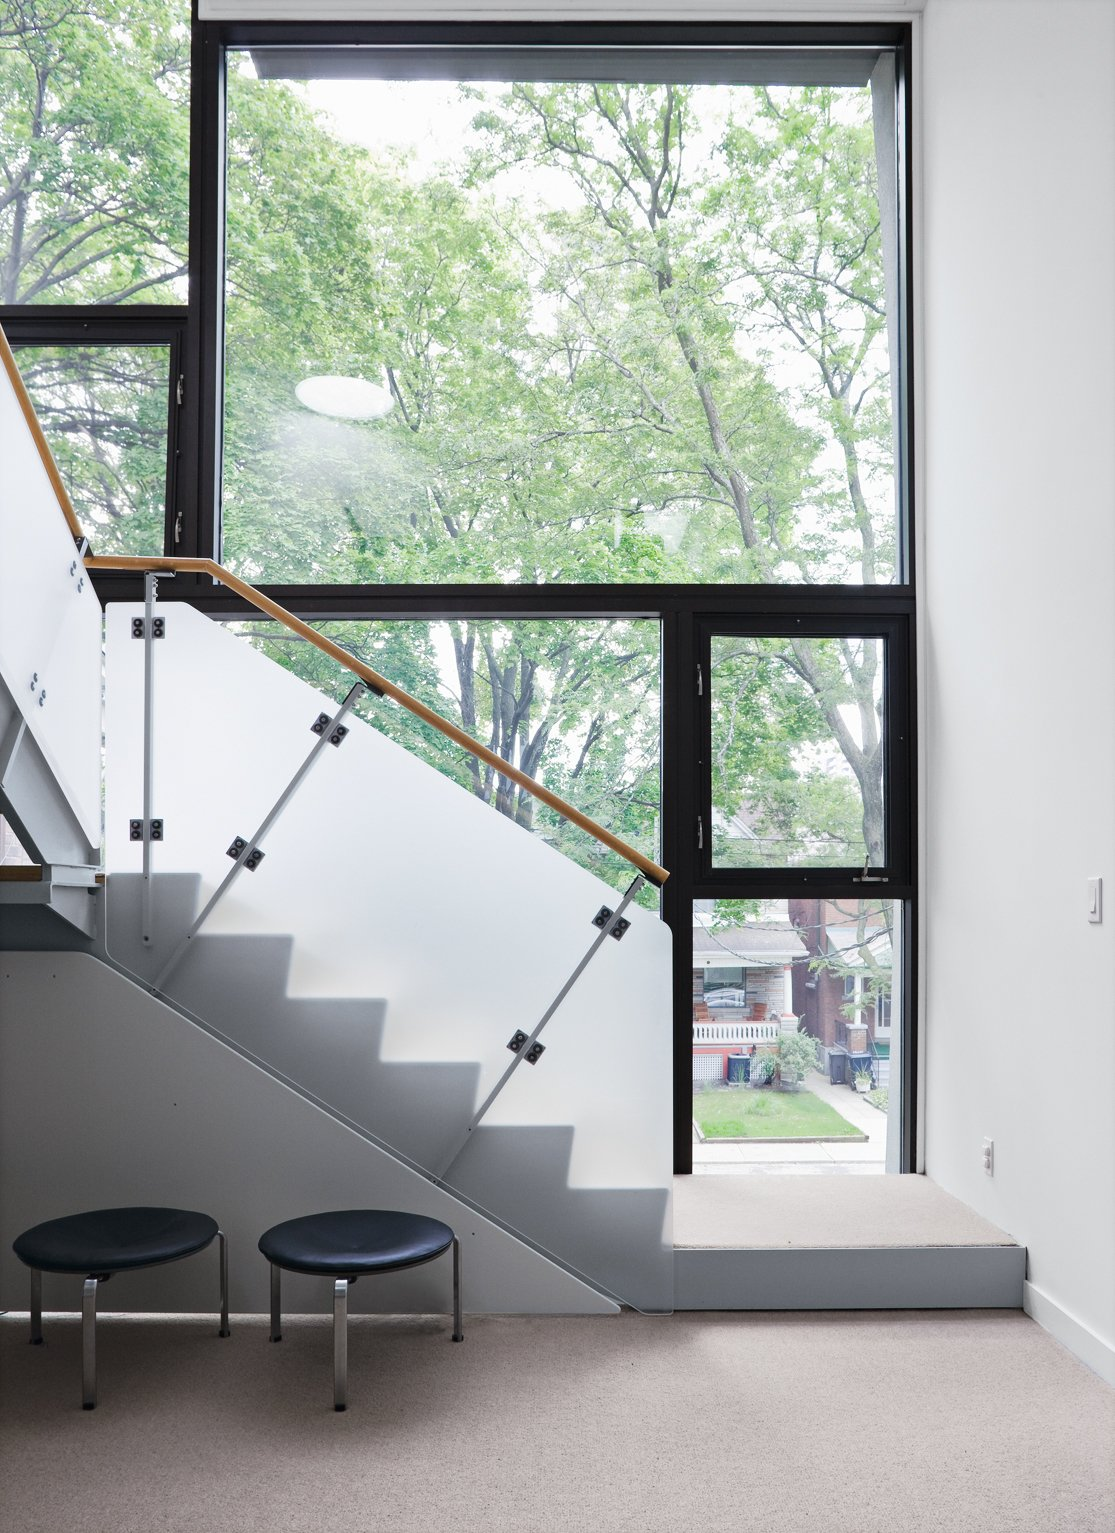 The second-floor family room is fronted by an L-shaped staircase with an opaque guardrail that provides some privacy for the front facade.  190+ Best Modern Staircase Ideas by Dwell from Narrow Modernist Three-Story Home in Toronto